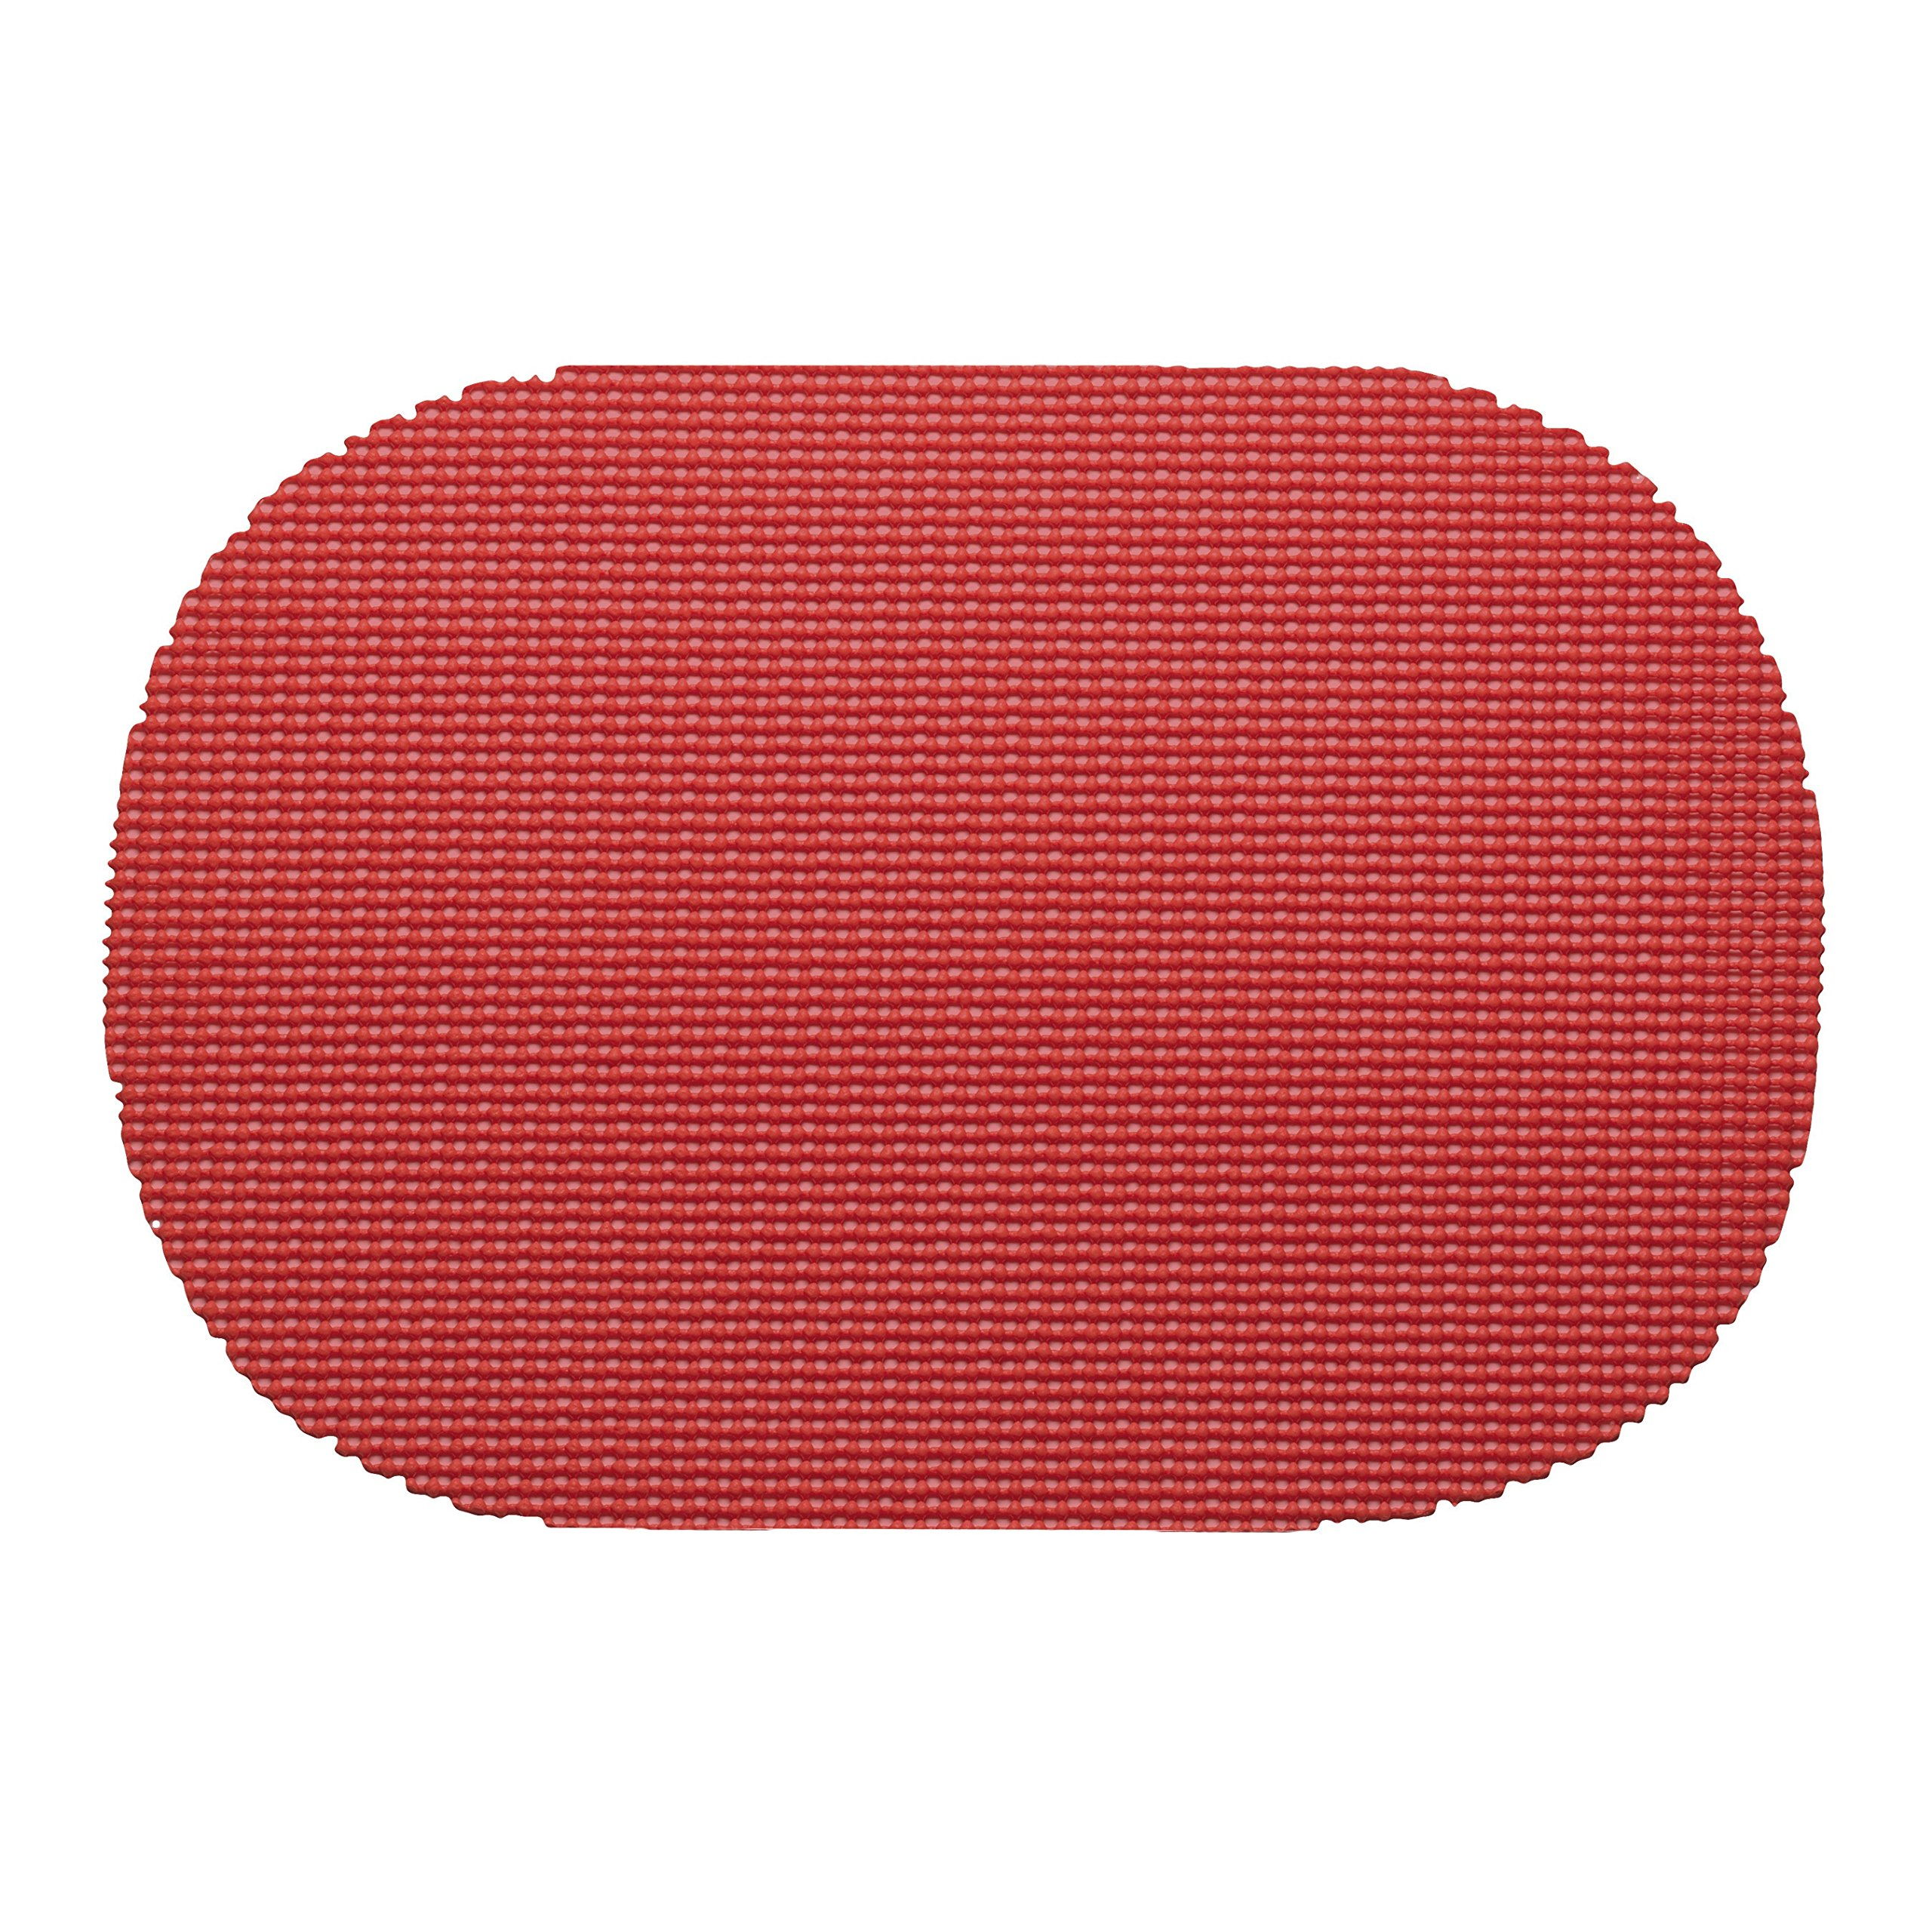 12 Piece Flag Red Placemats,(Set of 12), Machine Washable, Solid Pattern, Oval Shape, Contemporary And Traditional Style, Perfect For Everyday Entertaining, Season Or Holiday Lace Material, Ruby